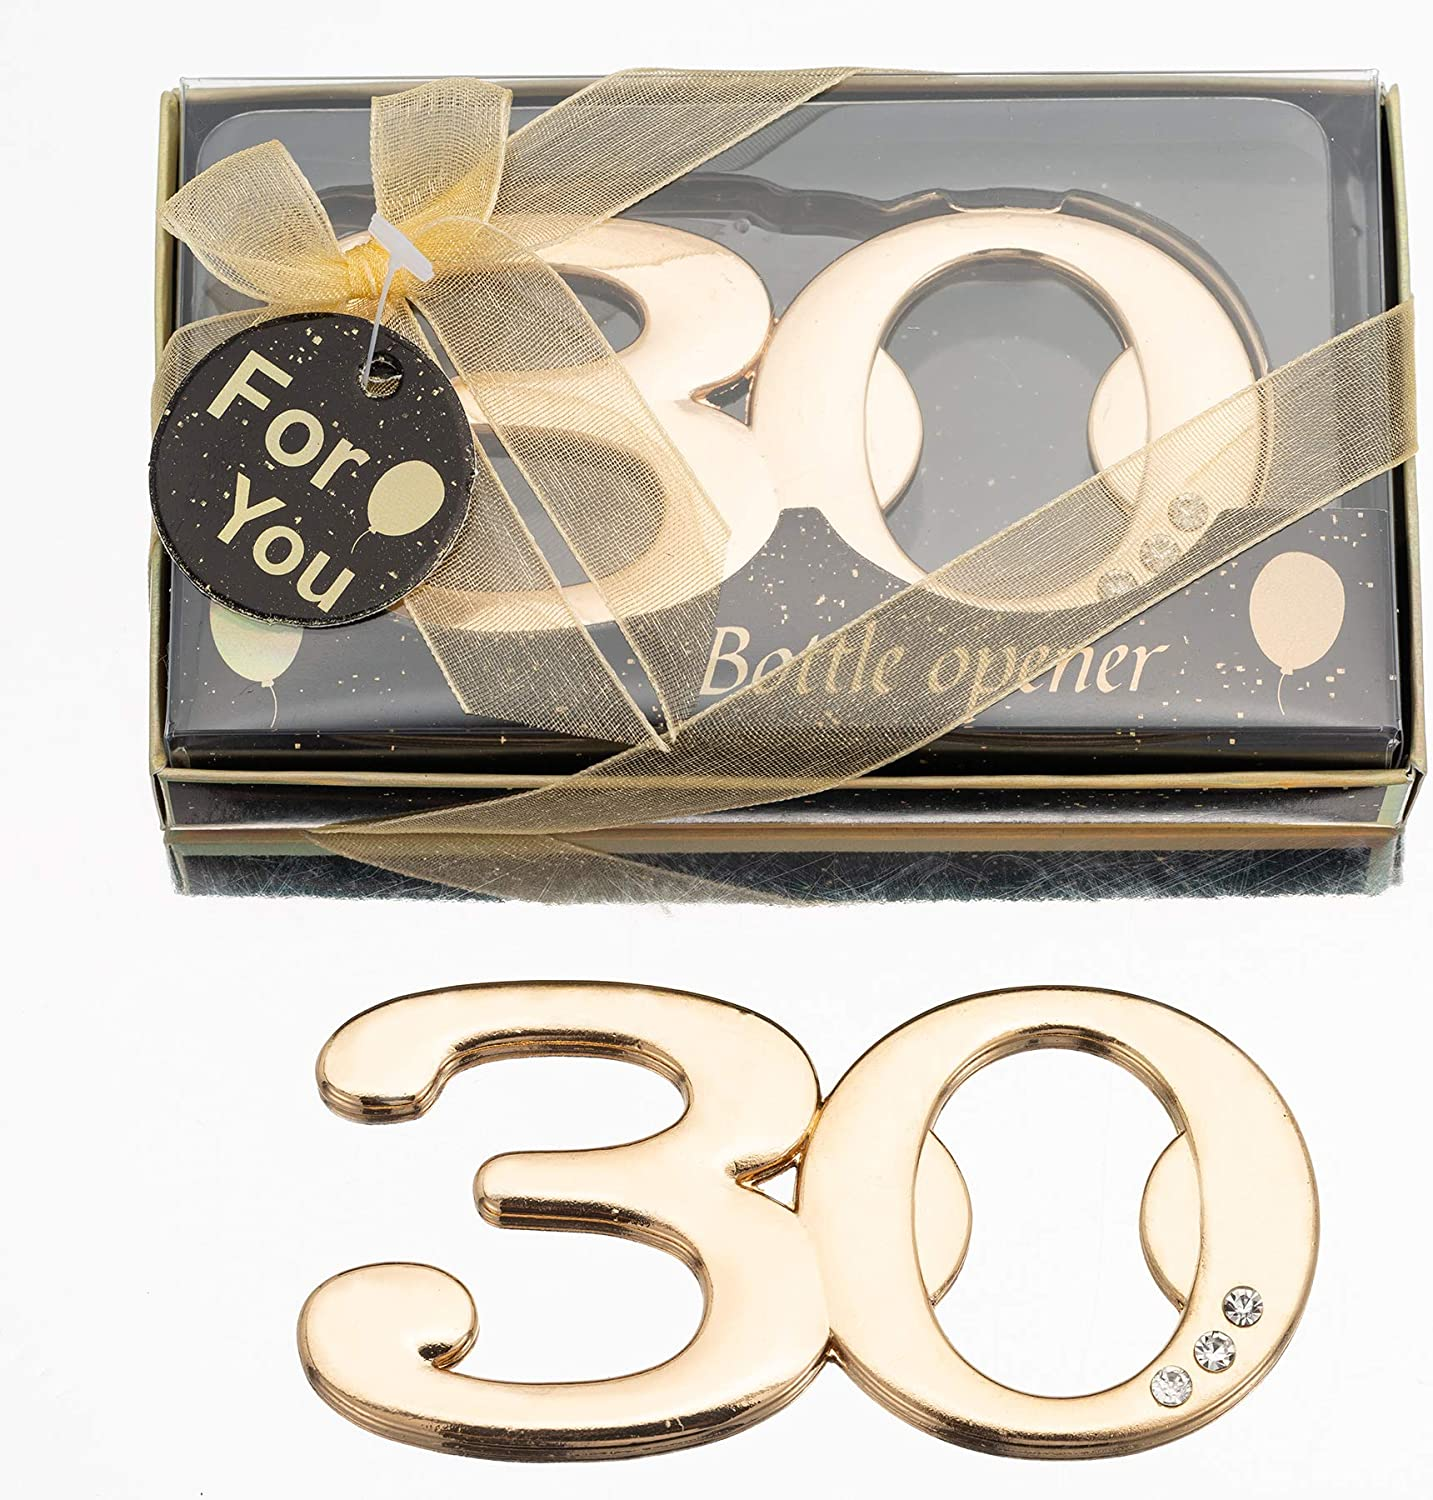 24PCS Latest 30 Super popular specialty store Bottle Inexpensive Openers for or 30th Party Favors Birthday